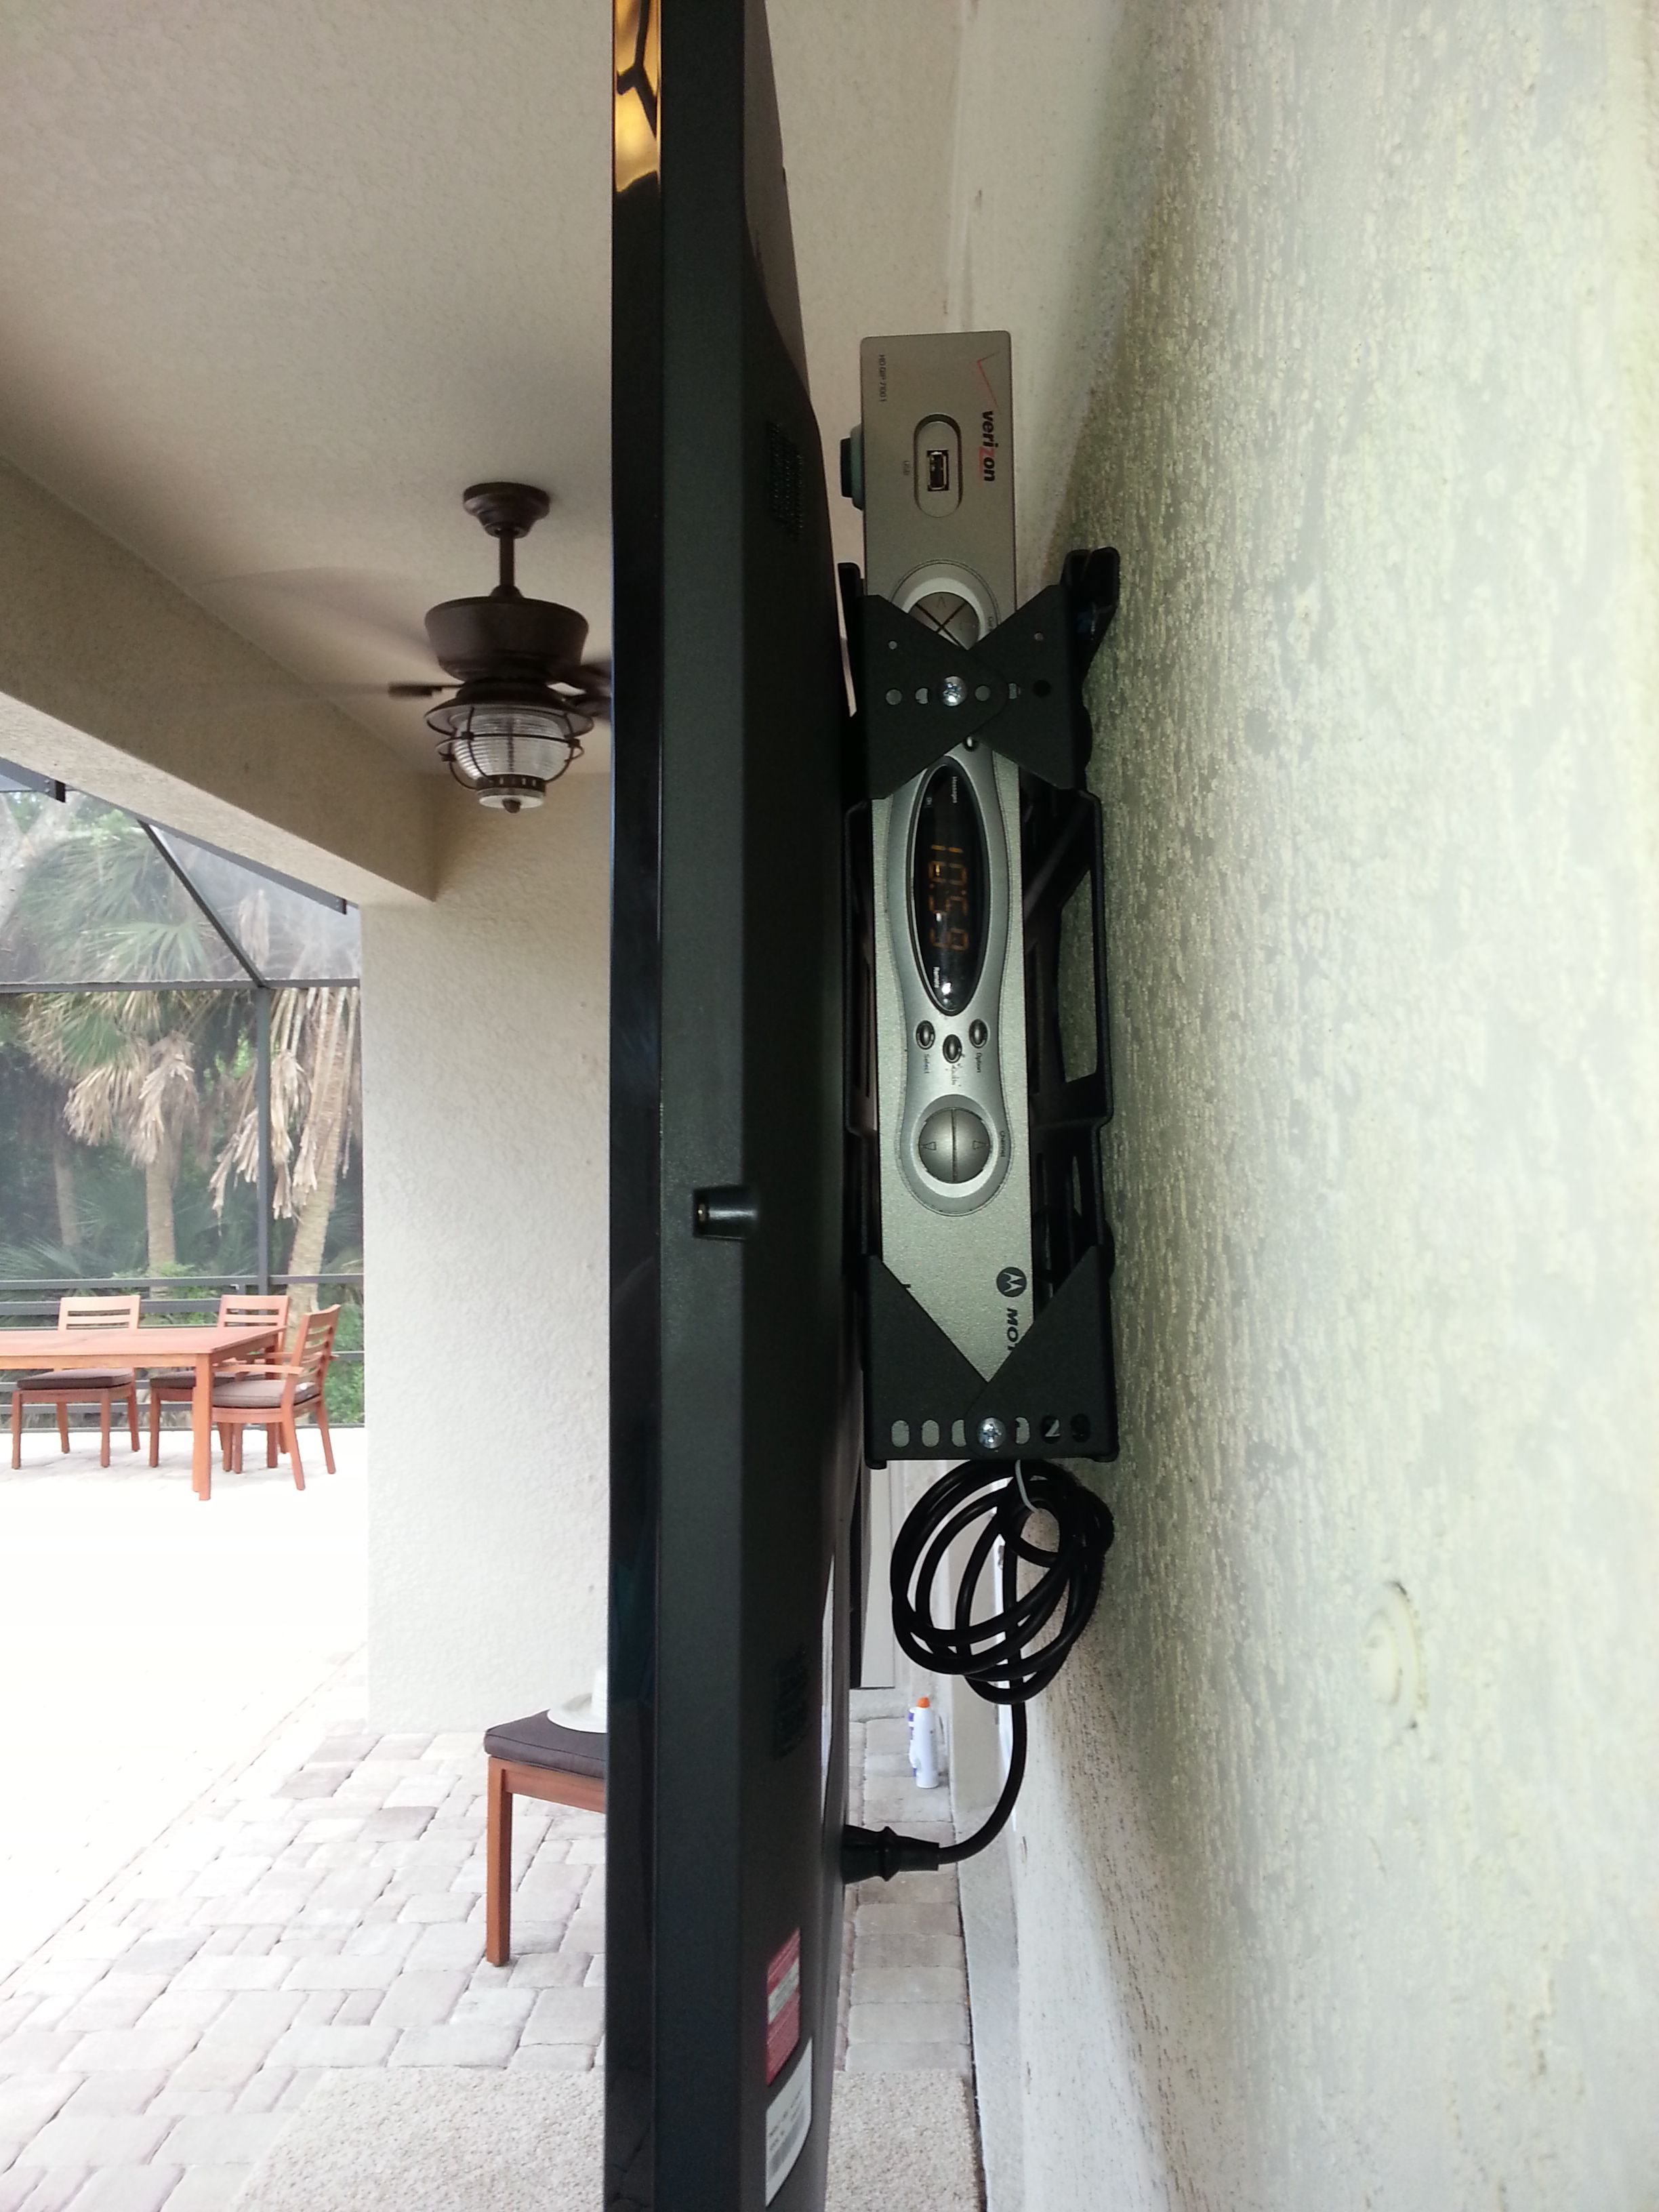 How To Mount Your Tv Outside And Hide The Cable Box And Wires Behind It Wall Mounted Tv Tv Over Fireplace Tv Wall